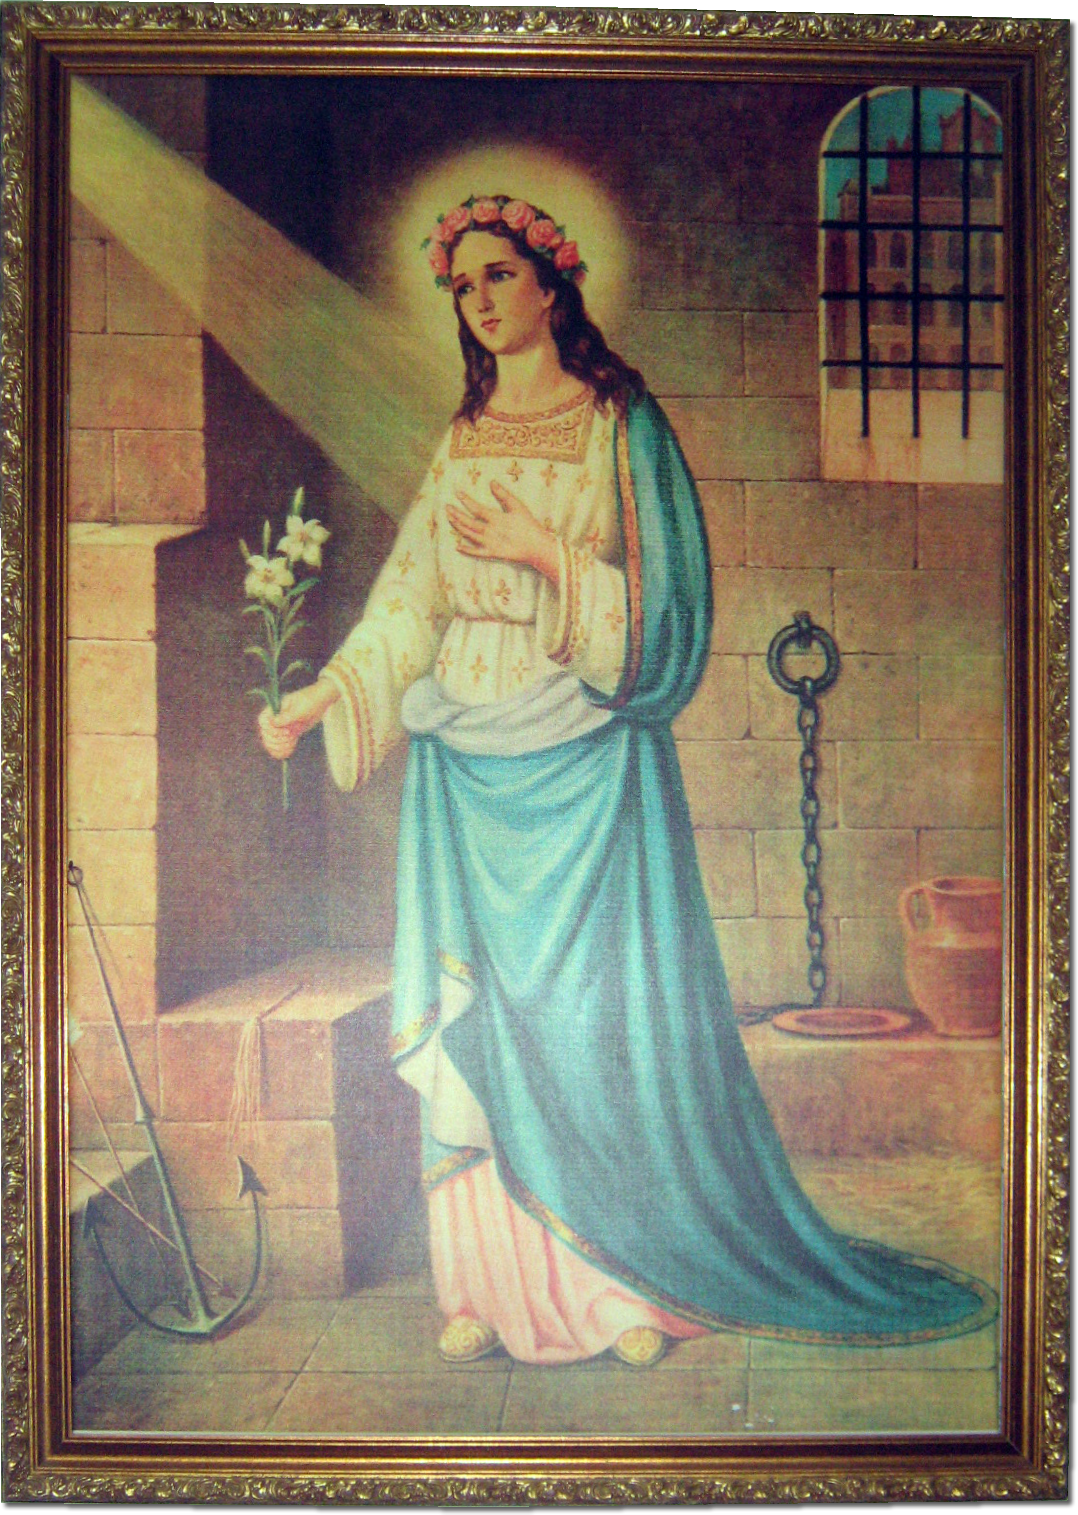 Photo taken by Stefan Neikes A Painting of Saint Philomena in the shrine in Mugnano.